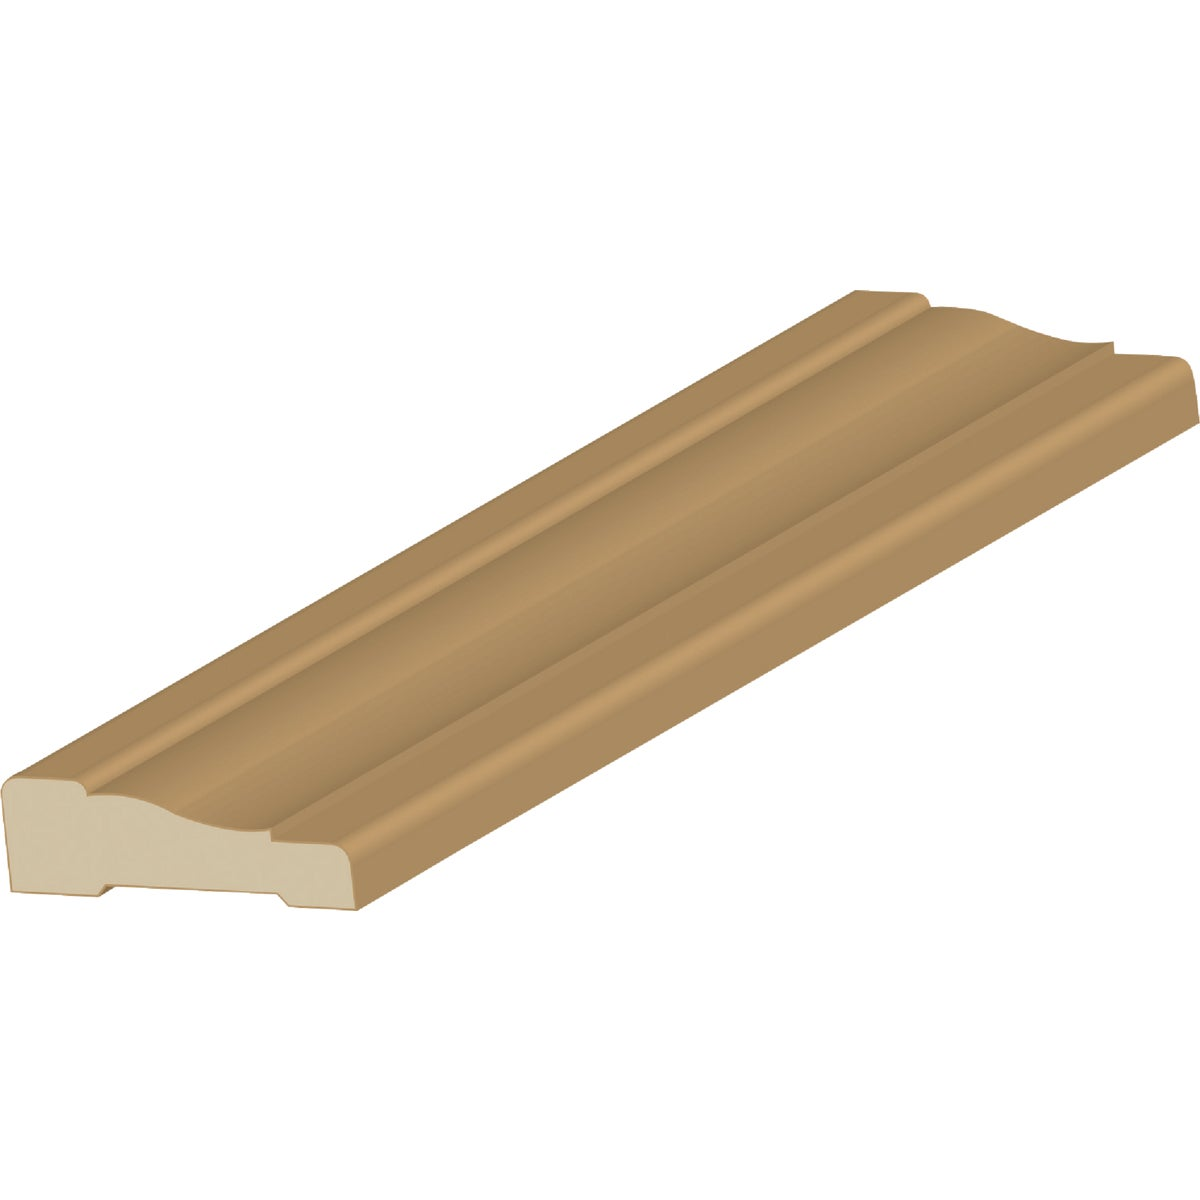 WM356 8' COL CASING - 35680PCRA by Jim White Millwork